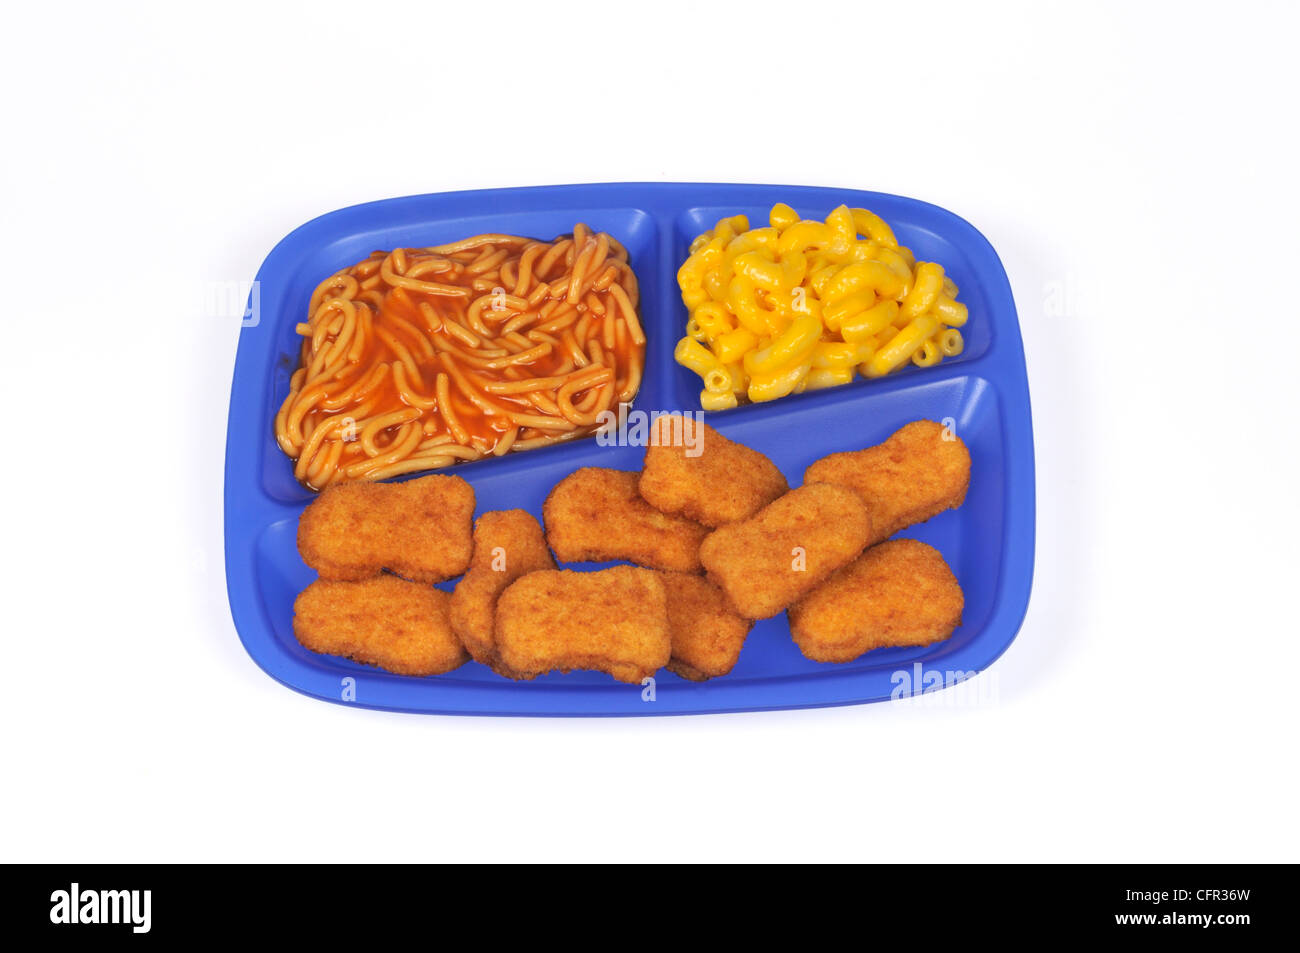 Lunch tray of breaded chicken nuggets, spaghetti with tomato sauce and macaroni and cheese on white background cut - Stock Image